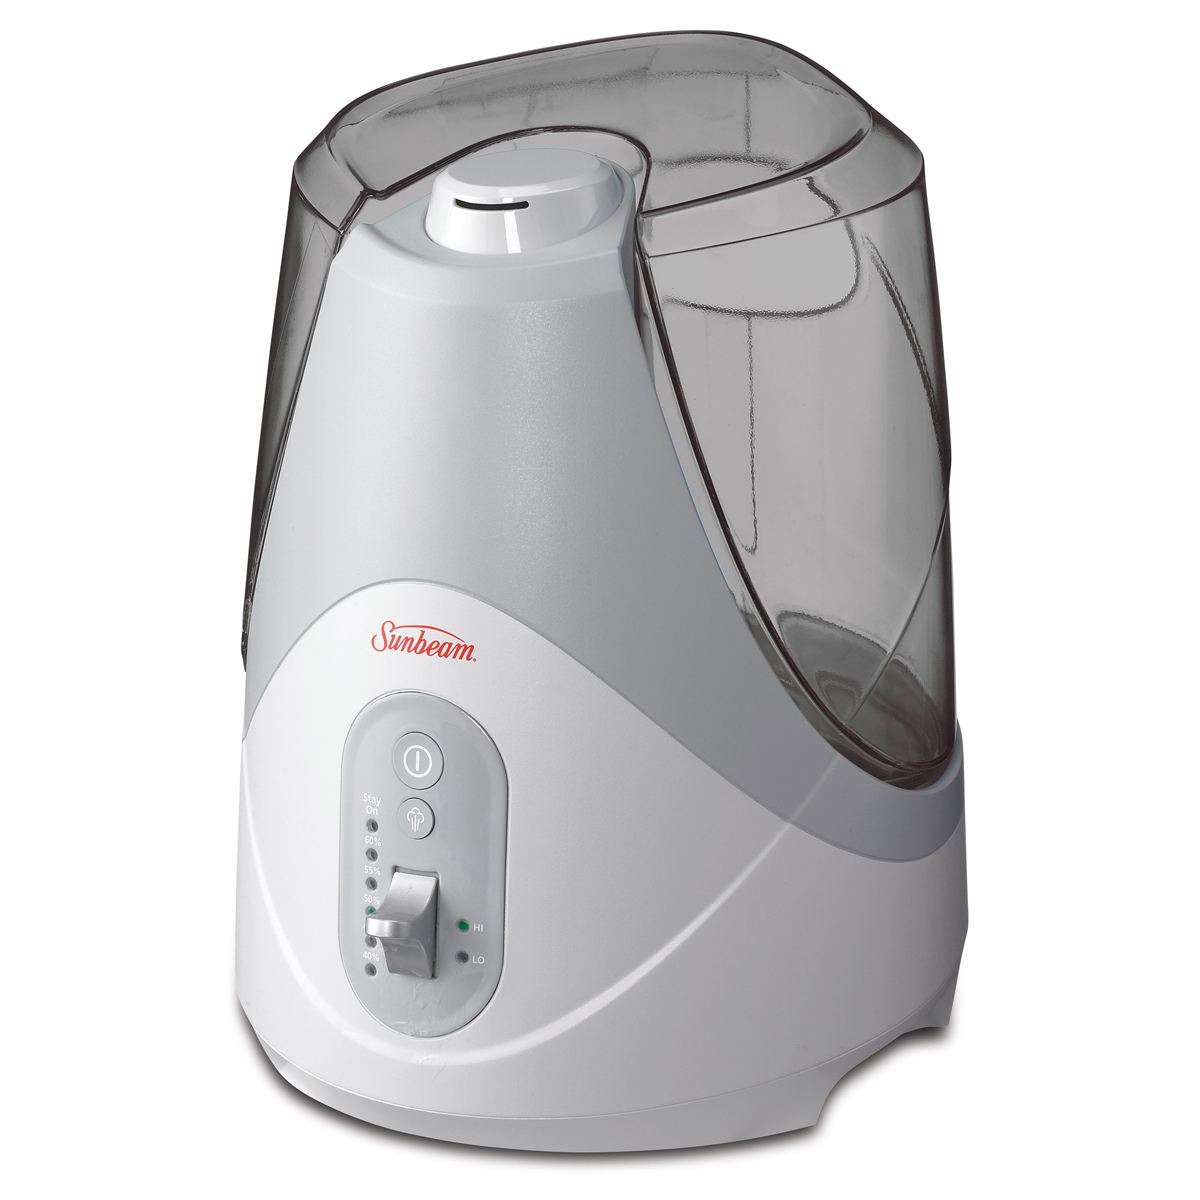 ® Ultrasonic Cool Mist Humidifier SUL2512 CN Sunbeam® Canada #735958